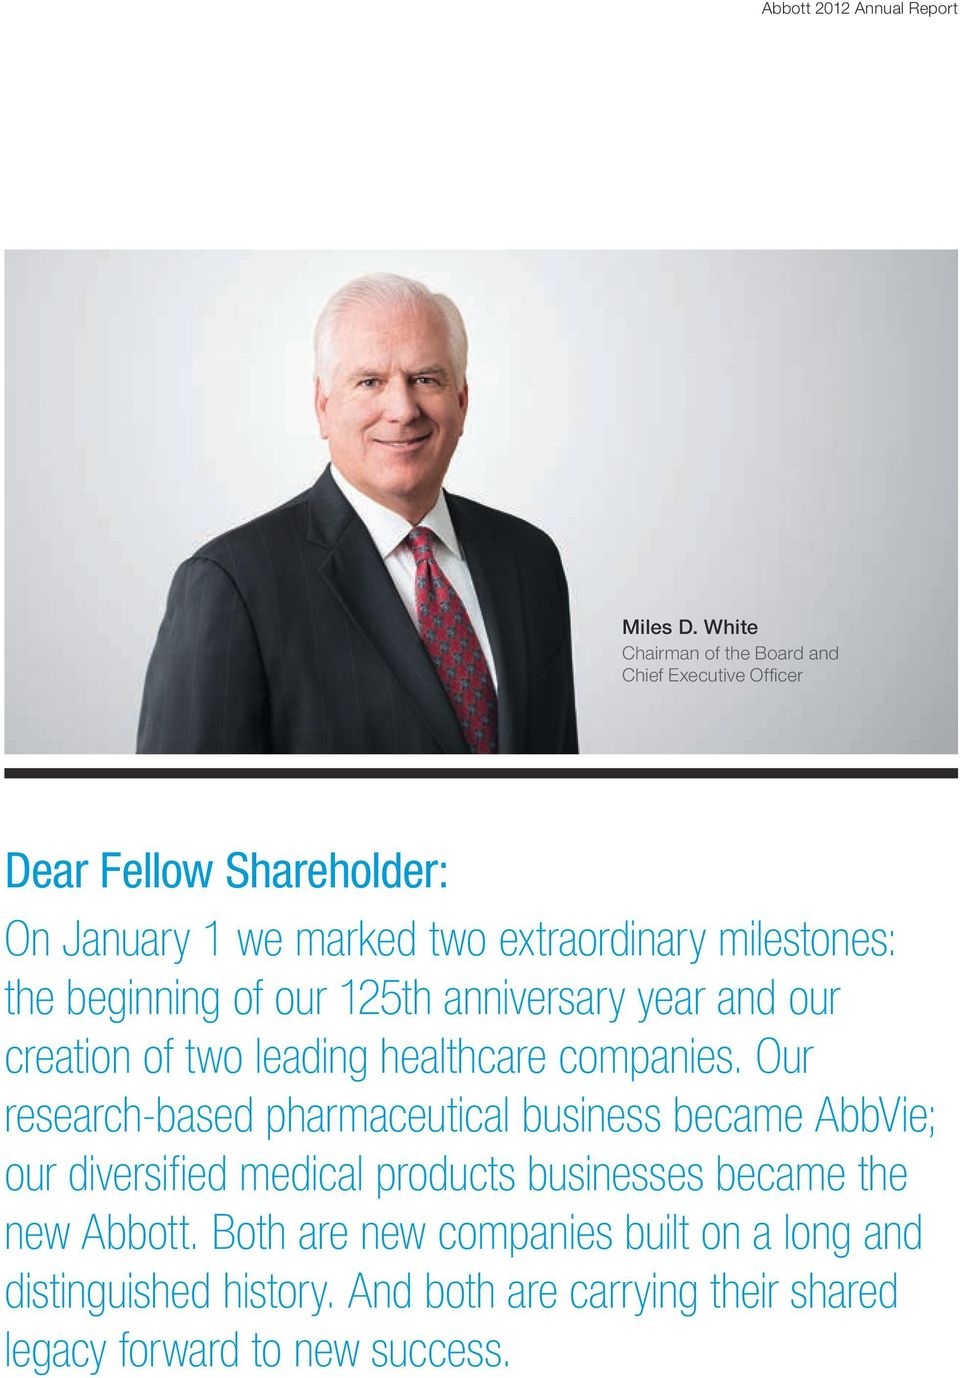 milestones: the beginning of our 125th anniversary year and our creation of two leading healthcare companies.